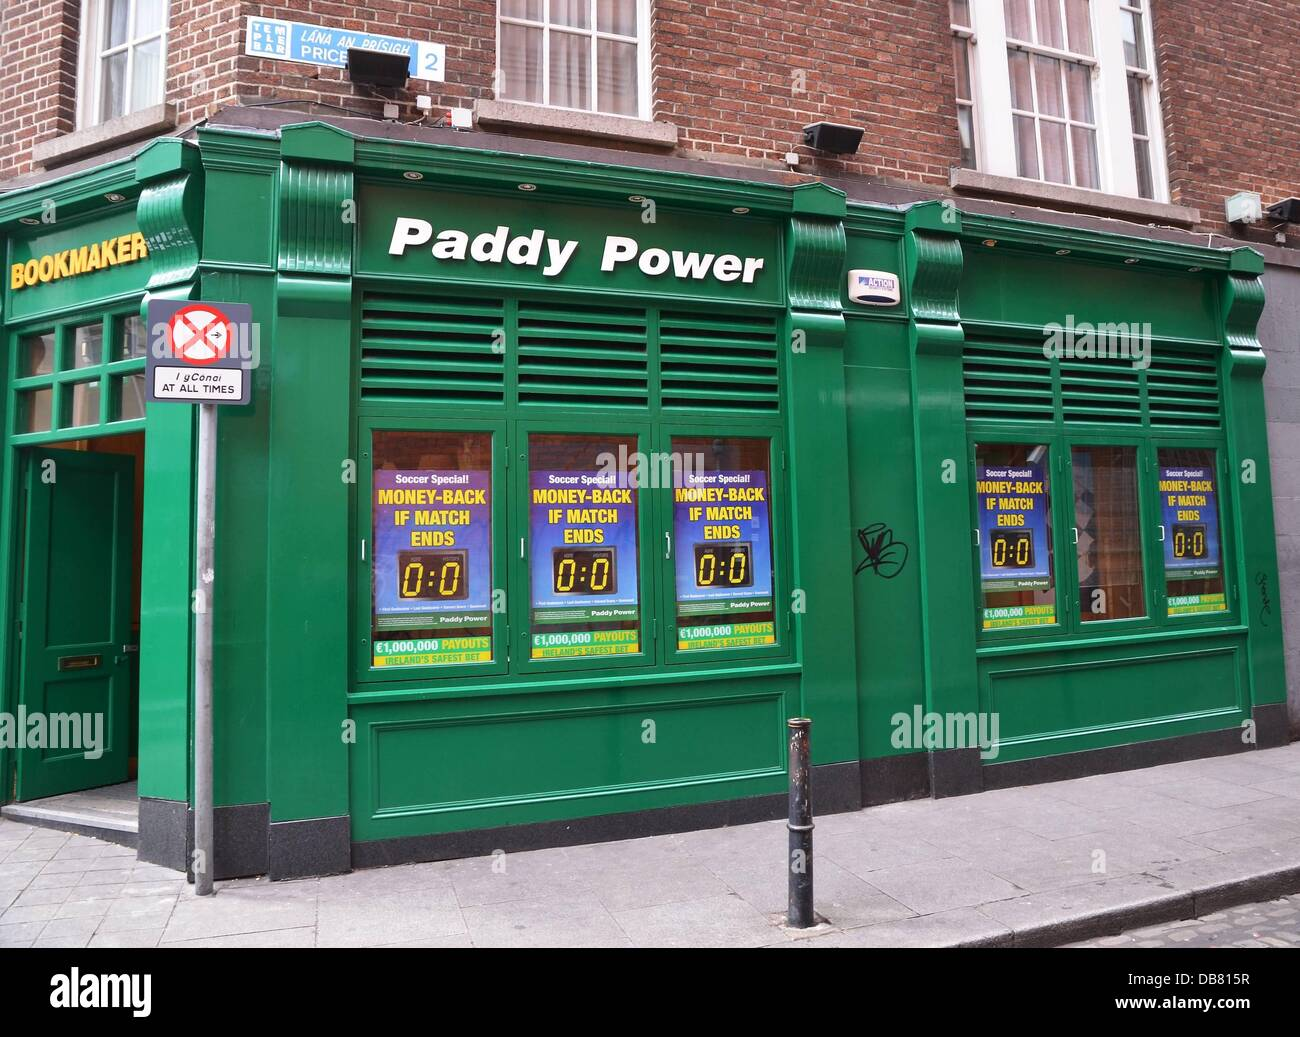 Paddy power bookmakers in temple bar changed their name to o bama power ahead of